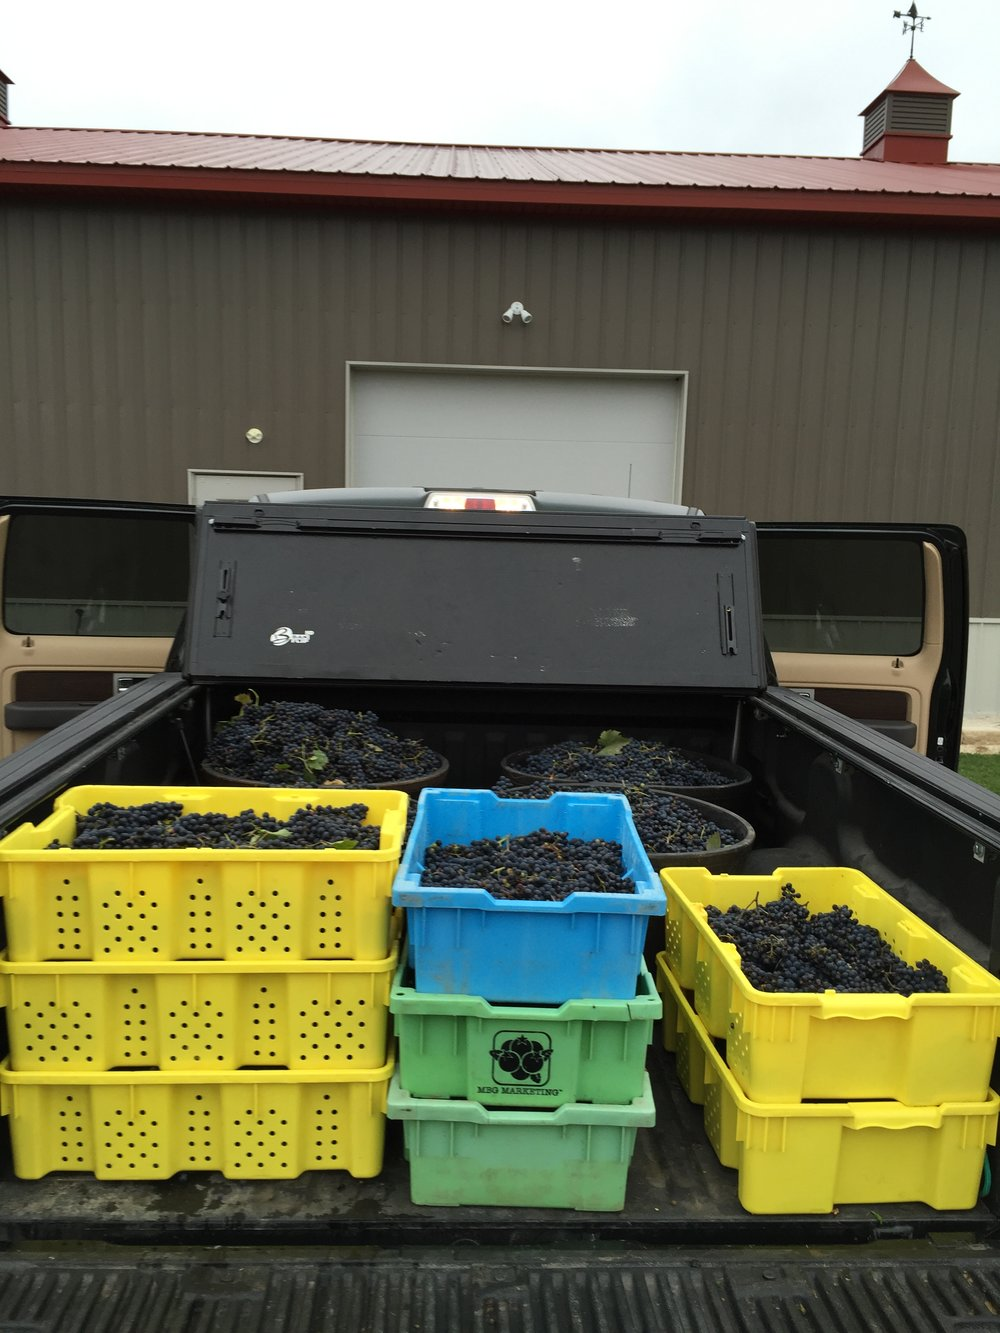 The fruits of our labor! Grape harvesting at Harbor Ridge Winery during the fall.